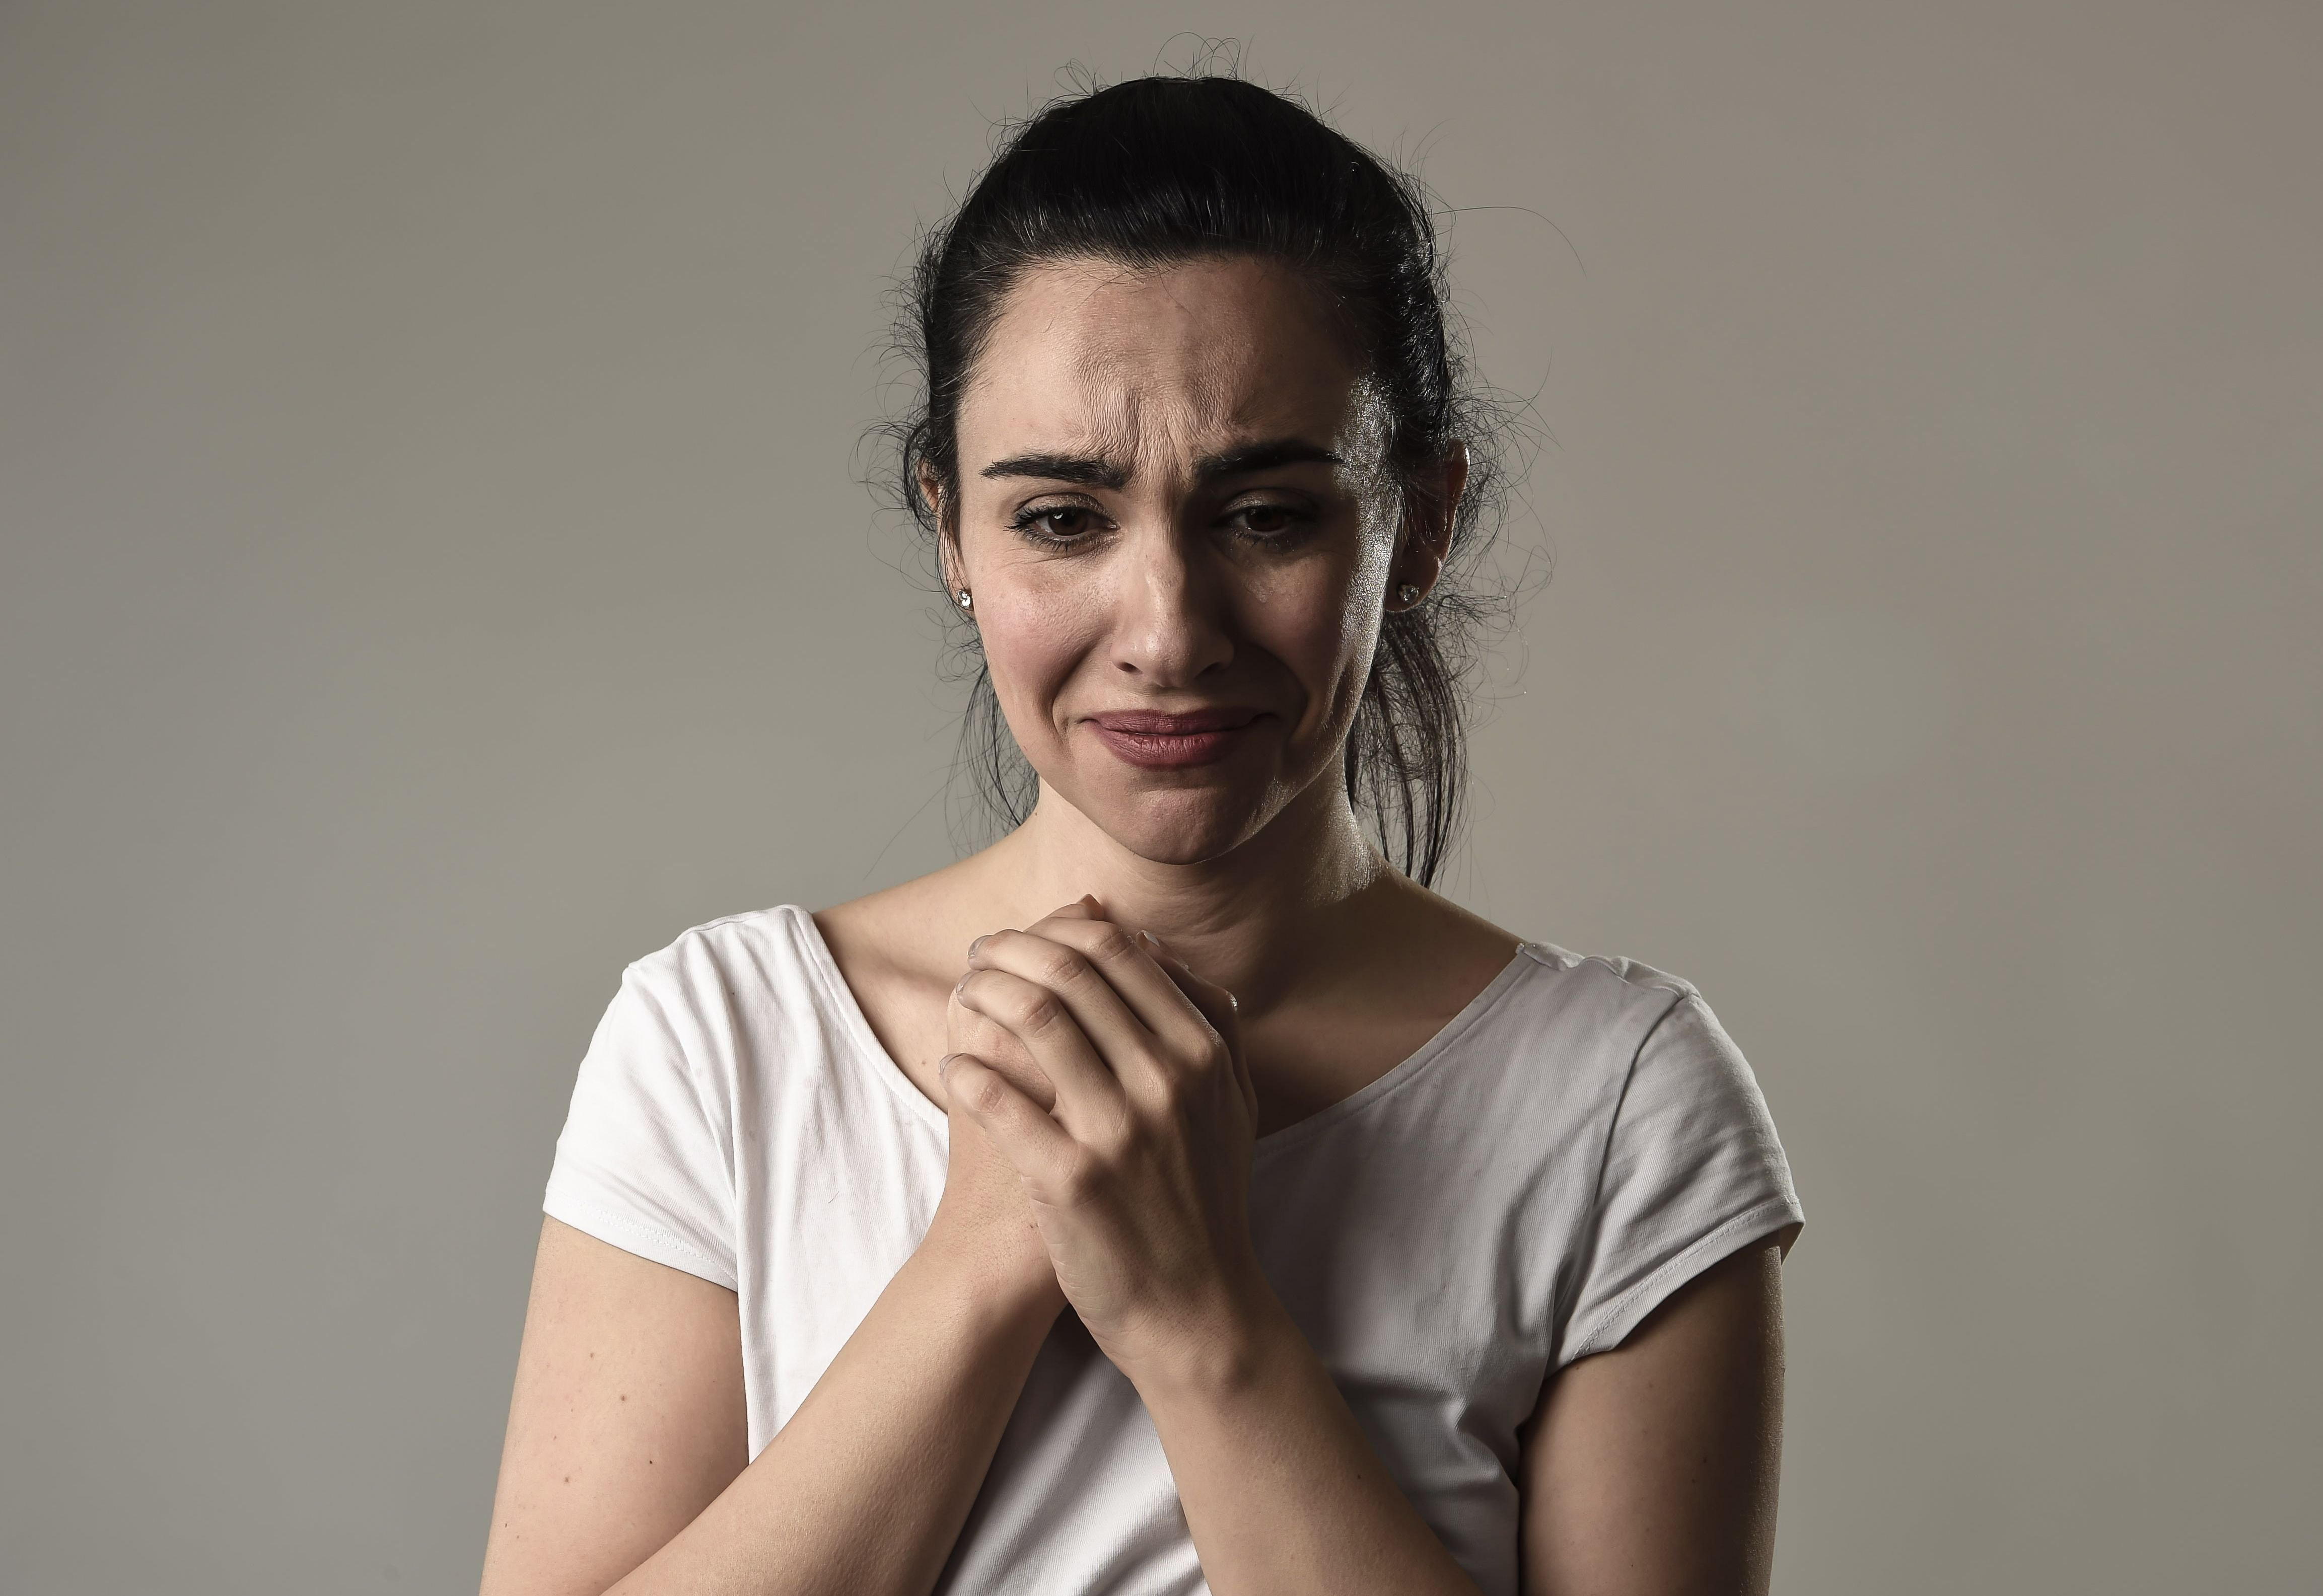 A woman crying while her hands are clasped together.   Source: Shutterstock